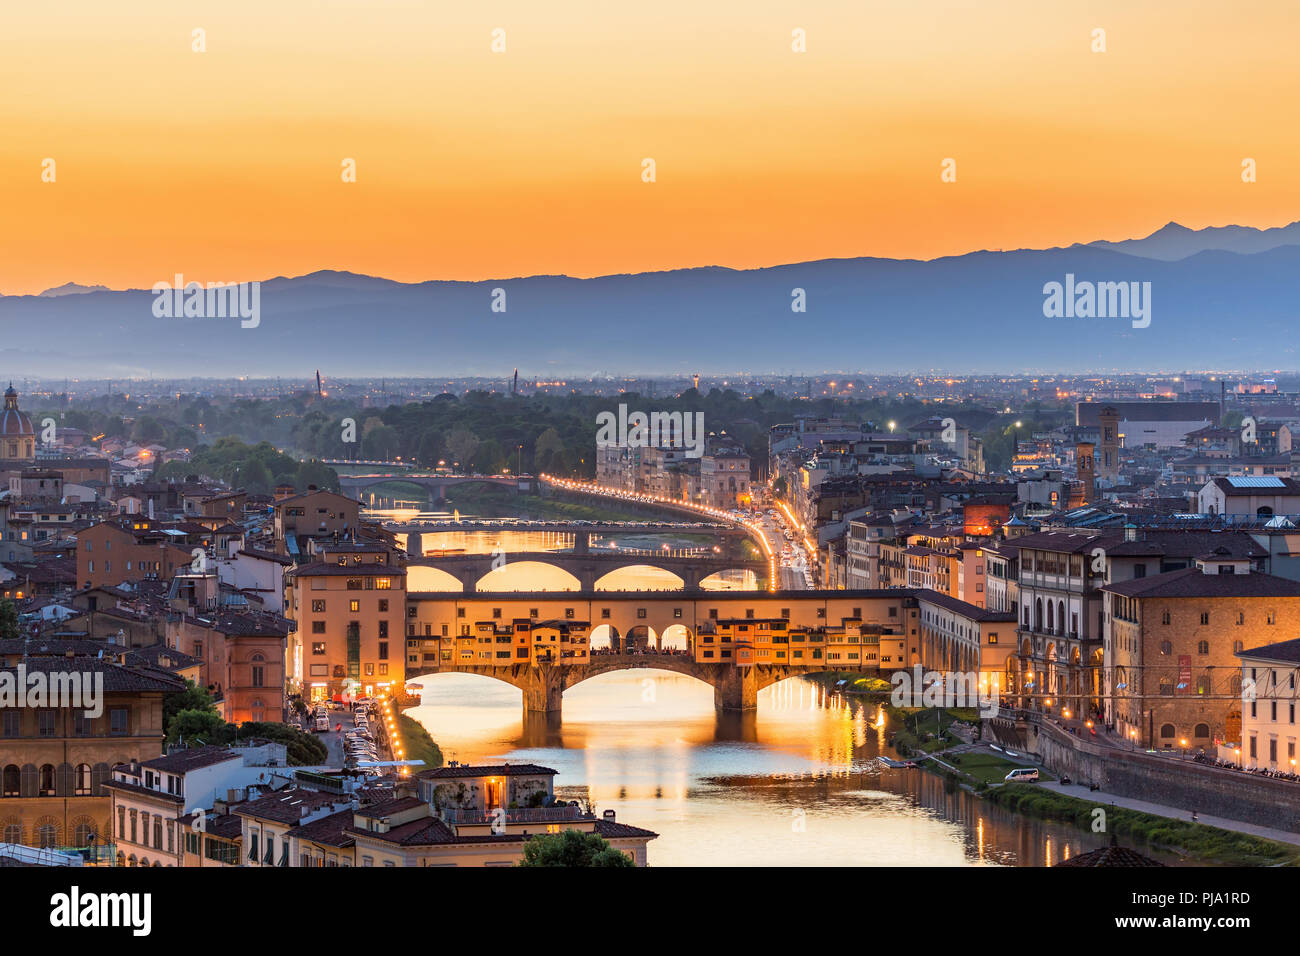 View of Florence at sunset with the Ponte Vecchio bridge over the Arno River - Stock Image